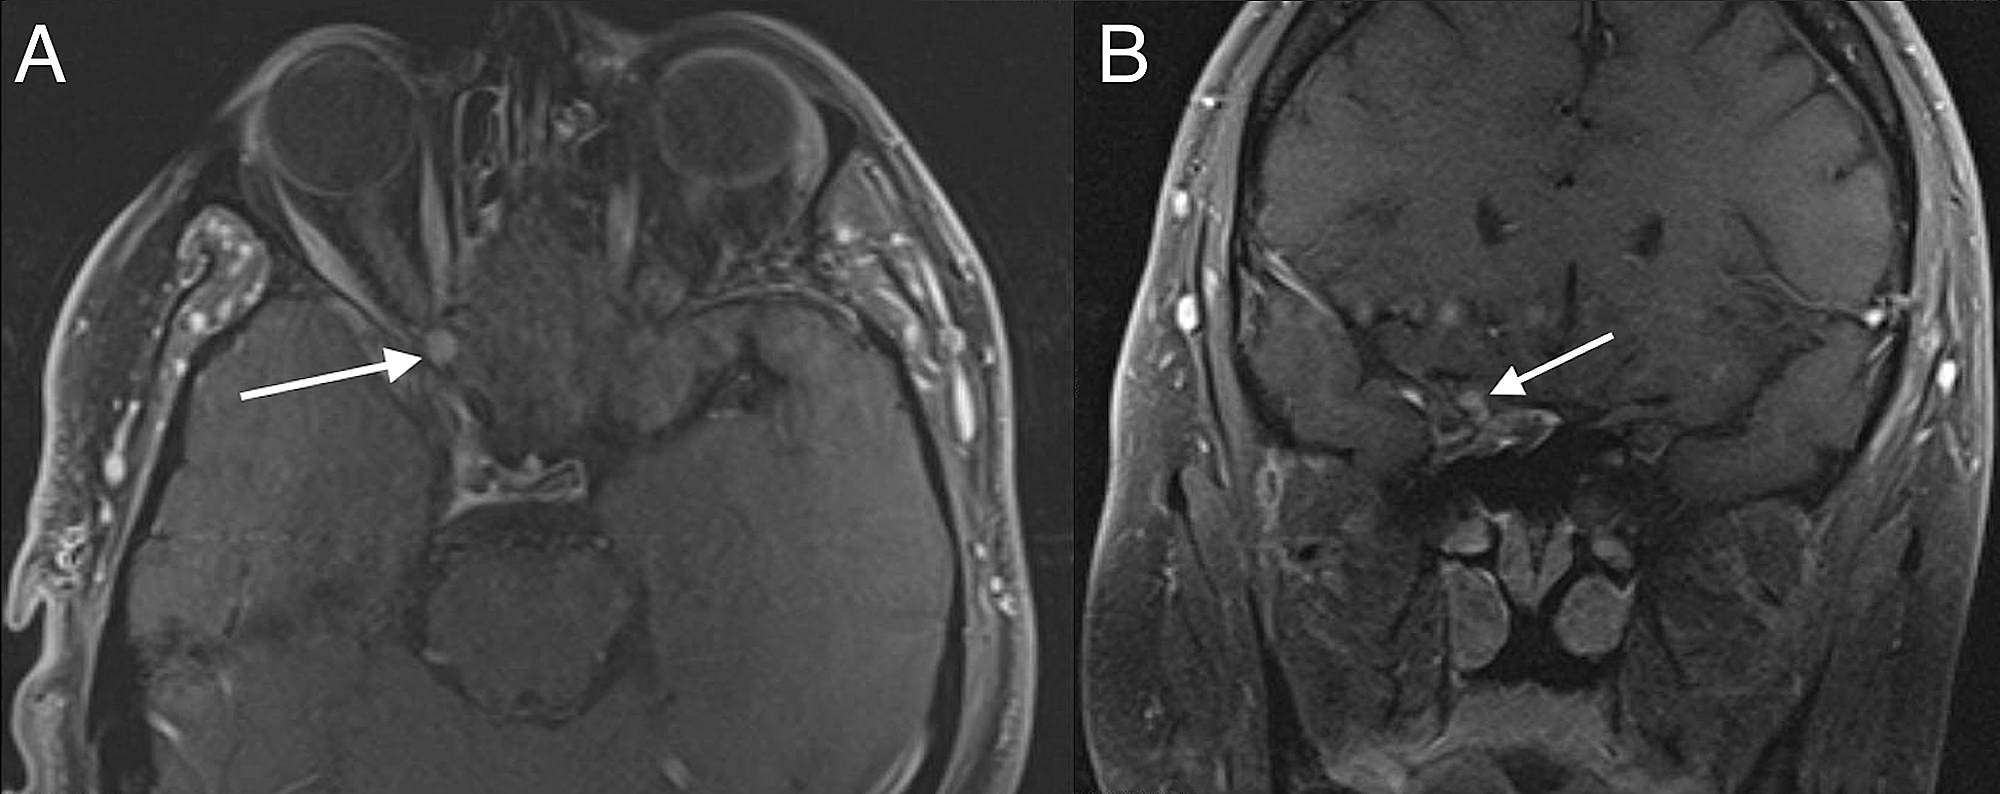 Cureus   A Rare Case of Optic Nerve Schwannoma: Case Report and ...